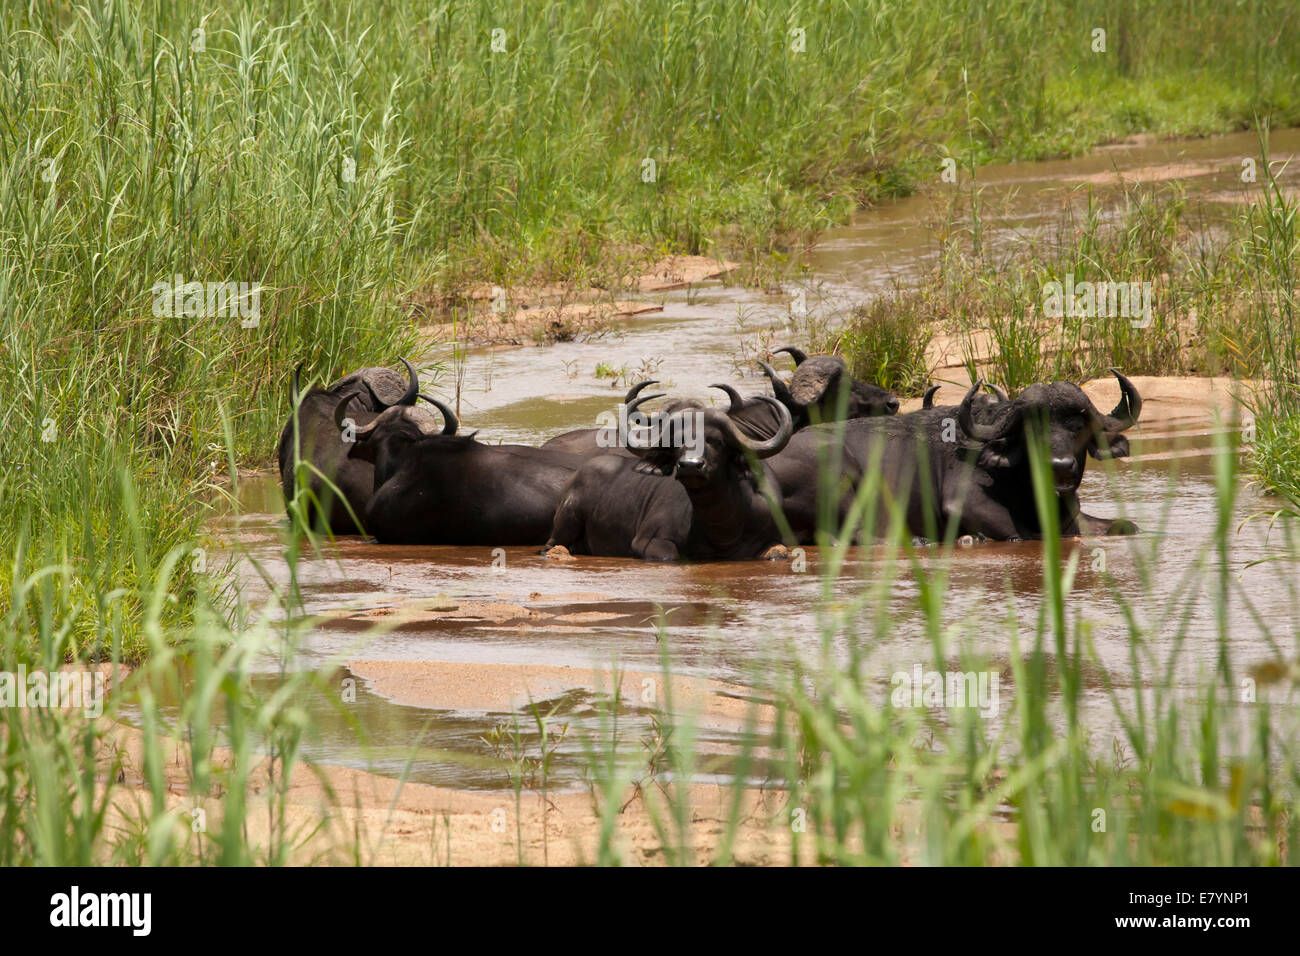 African Water Buffalo staying cool in a stream - Stock Image